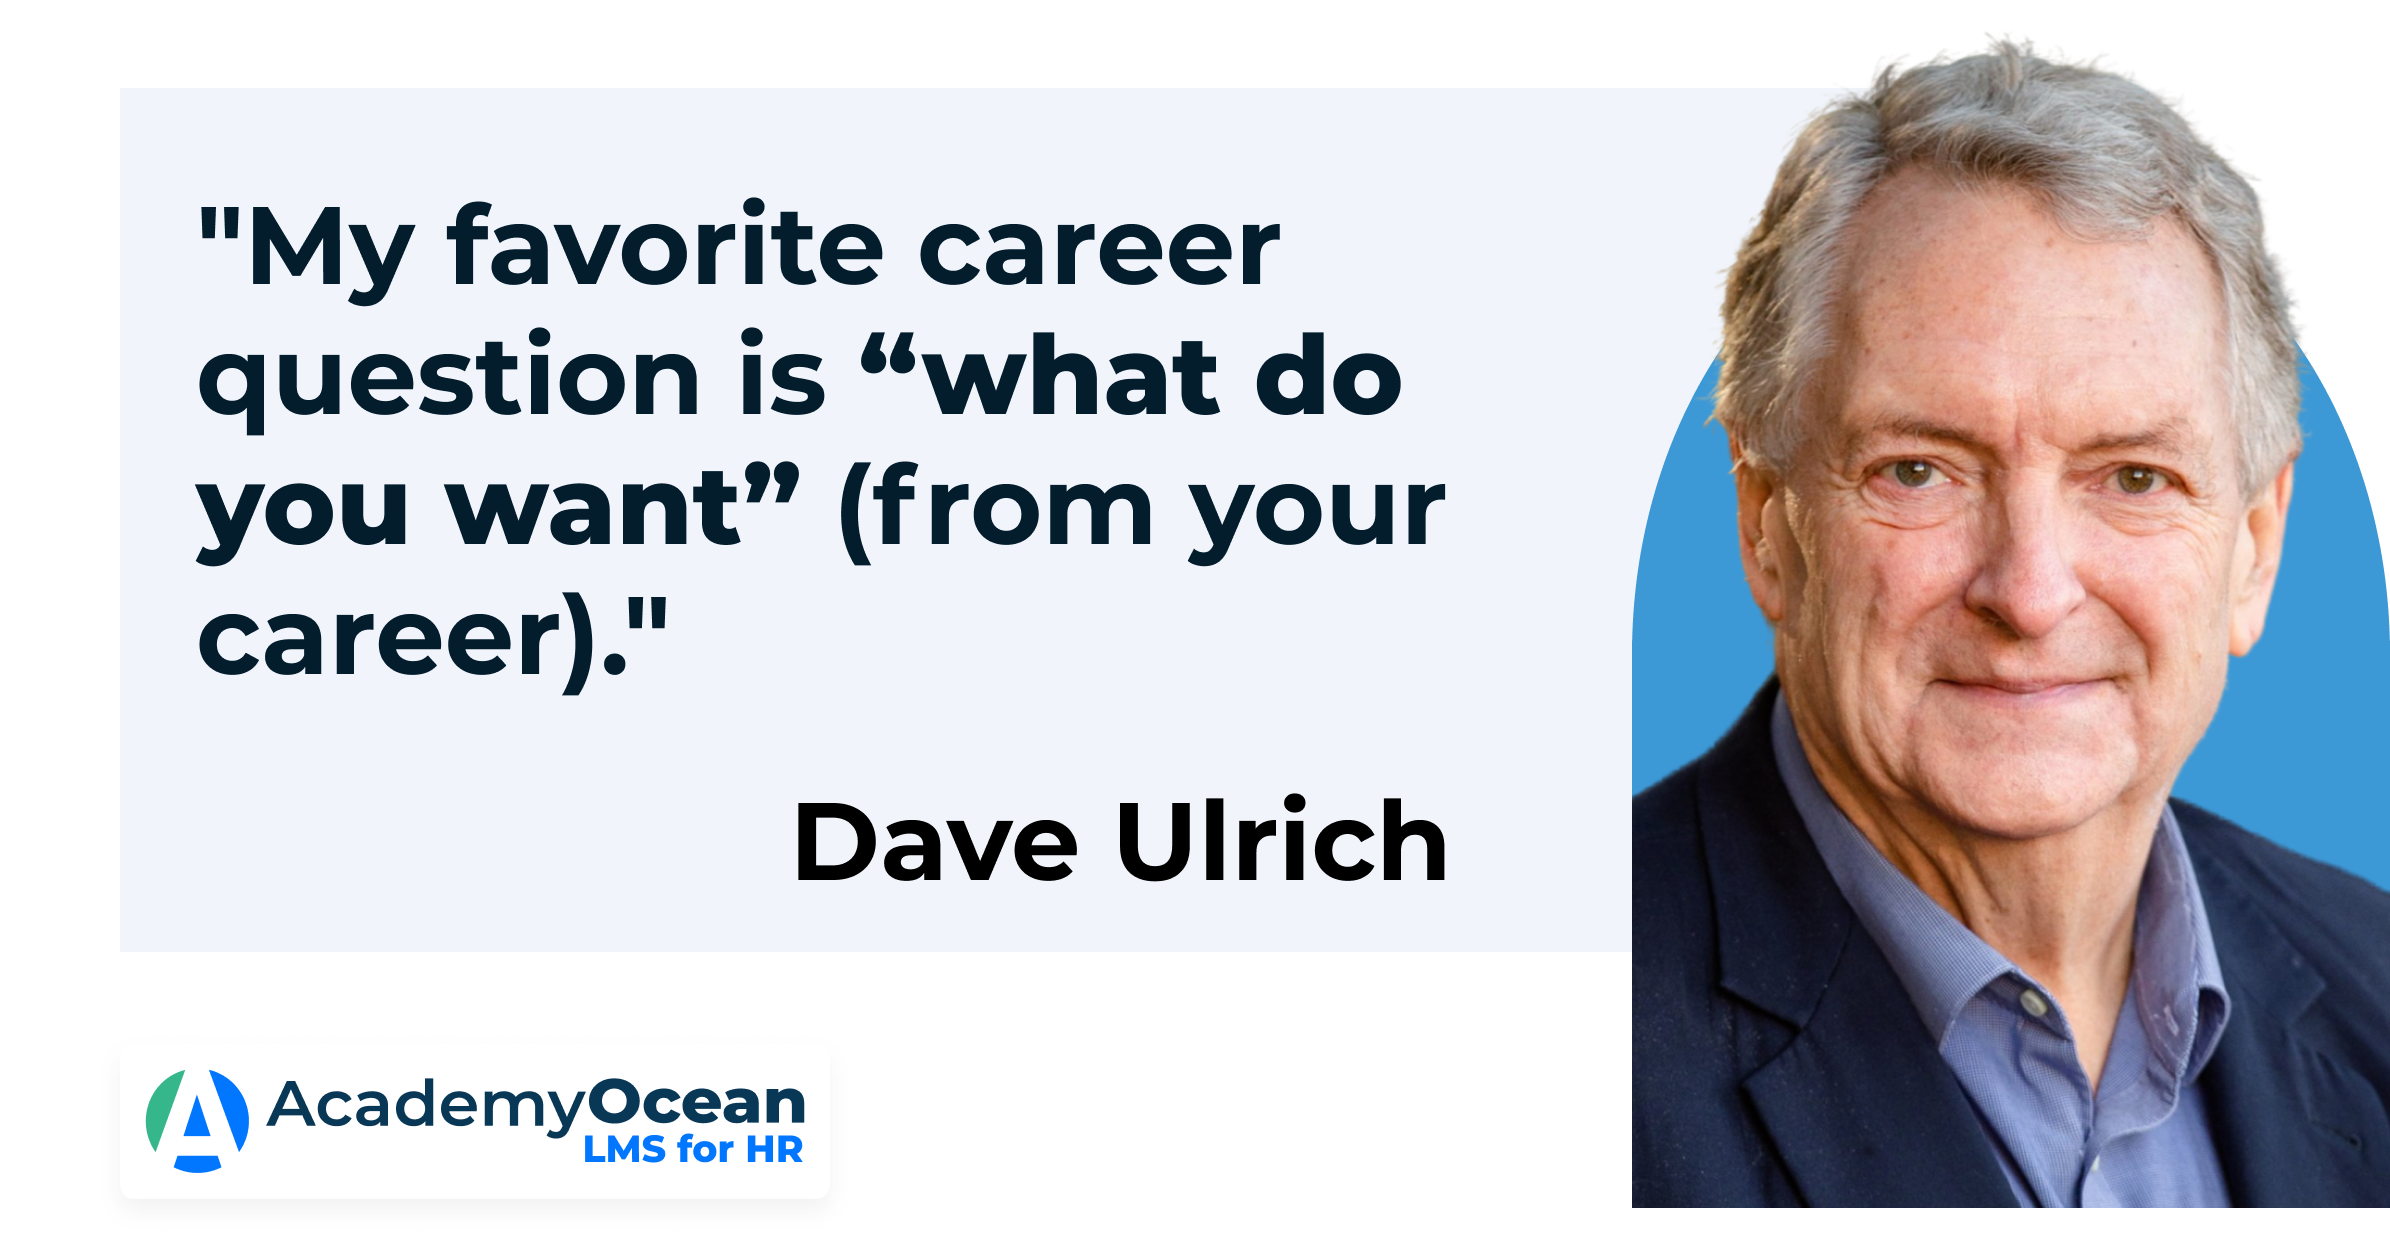 Dave Ulrich's quote from an interview 2021